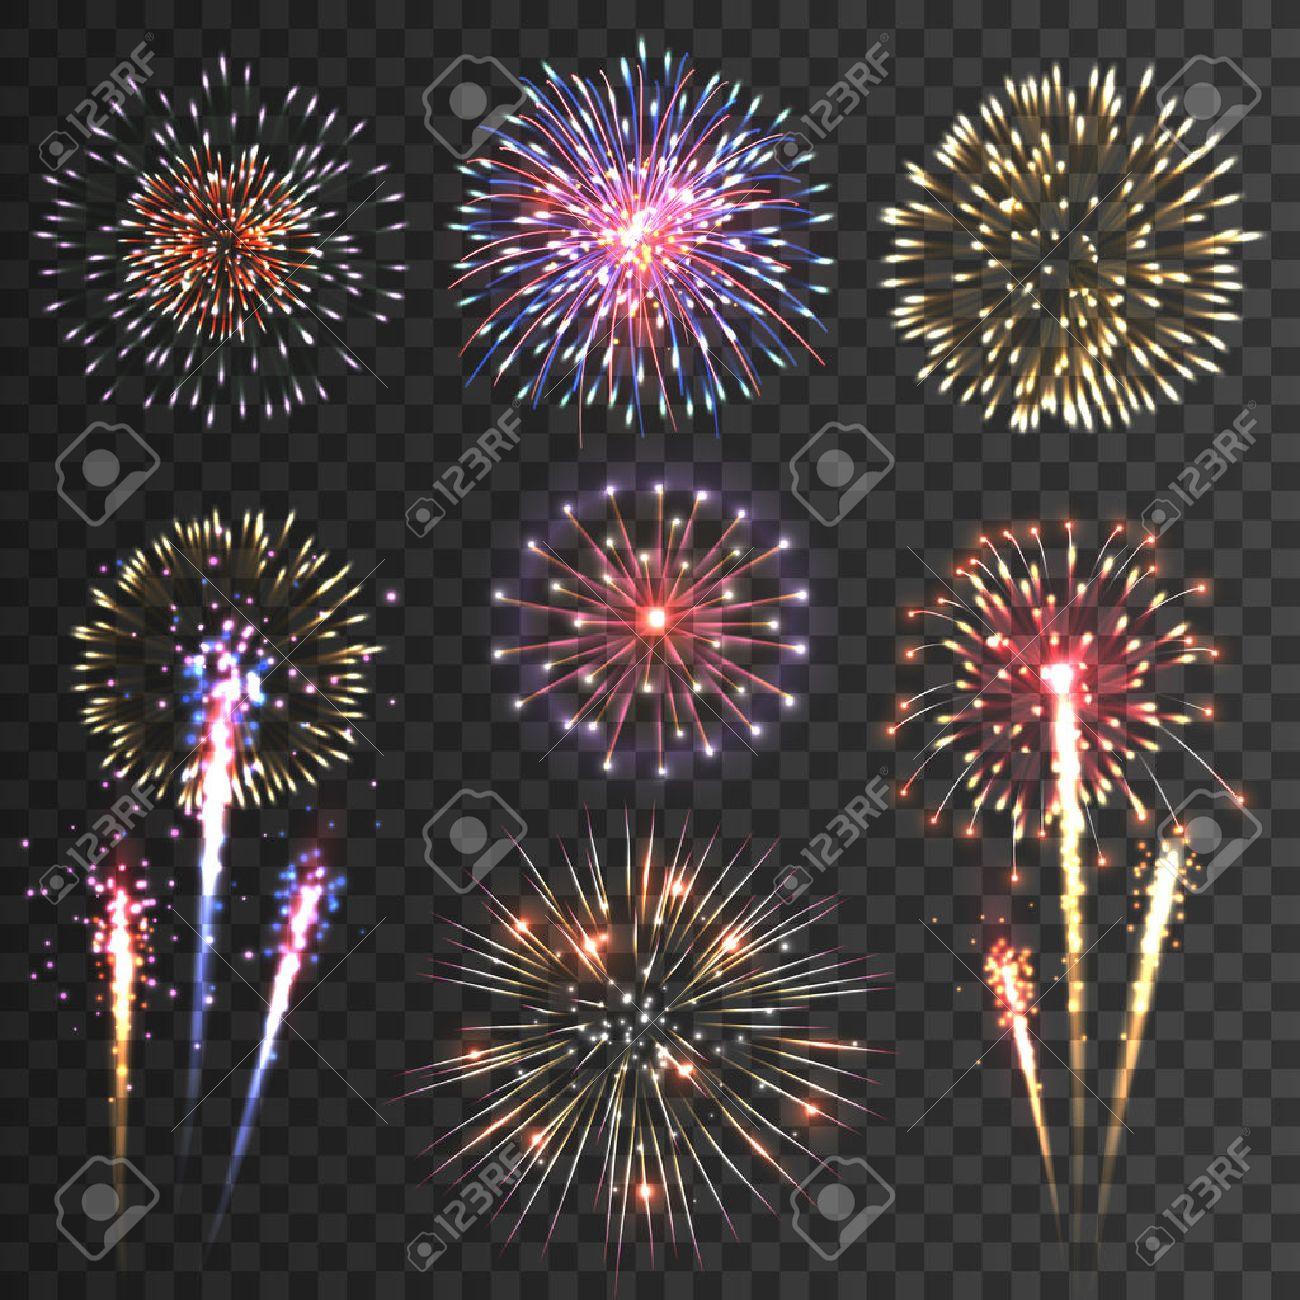 Festive patterned firework  bursting  in various shapes sparkling pictograms set  against black background abstract vector isolated illustration Stock Vector - 41896472